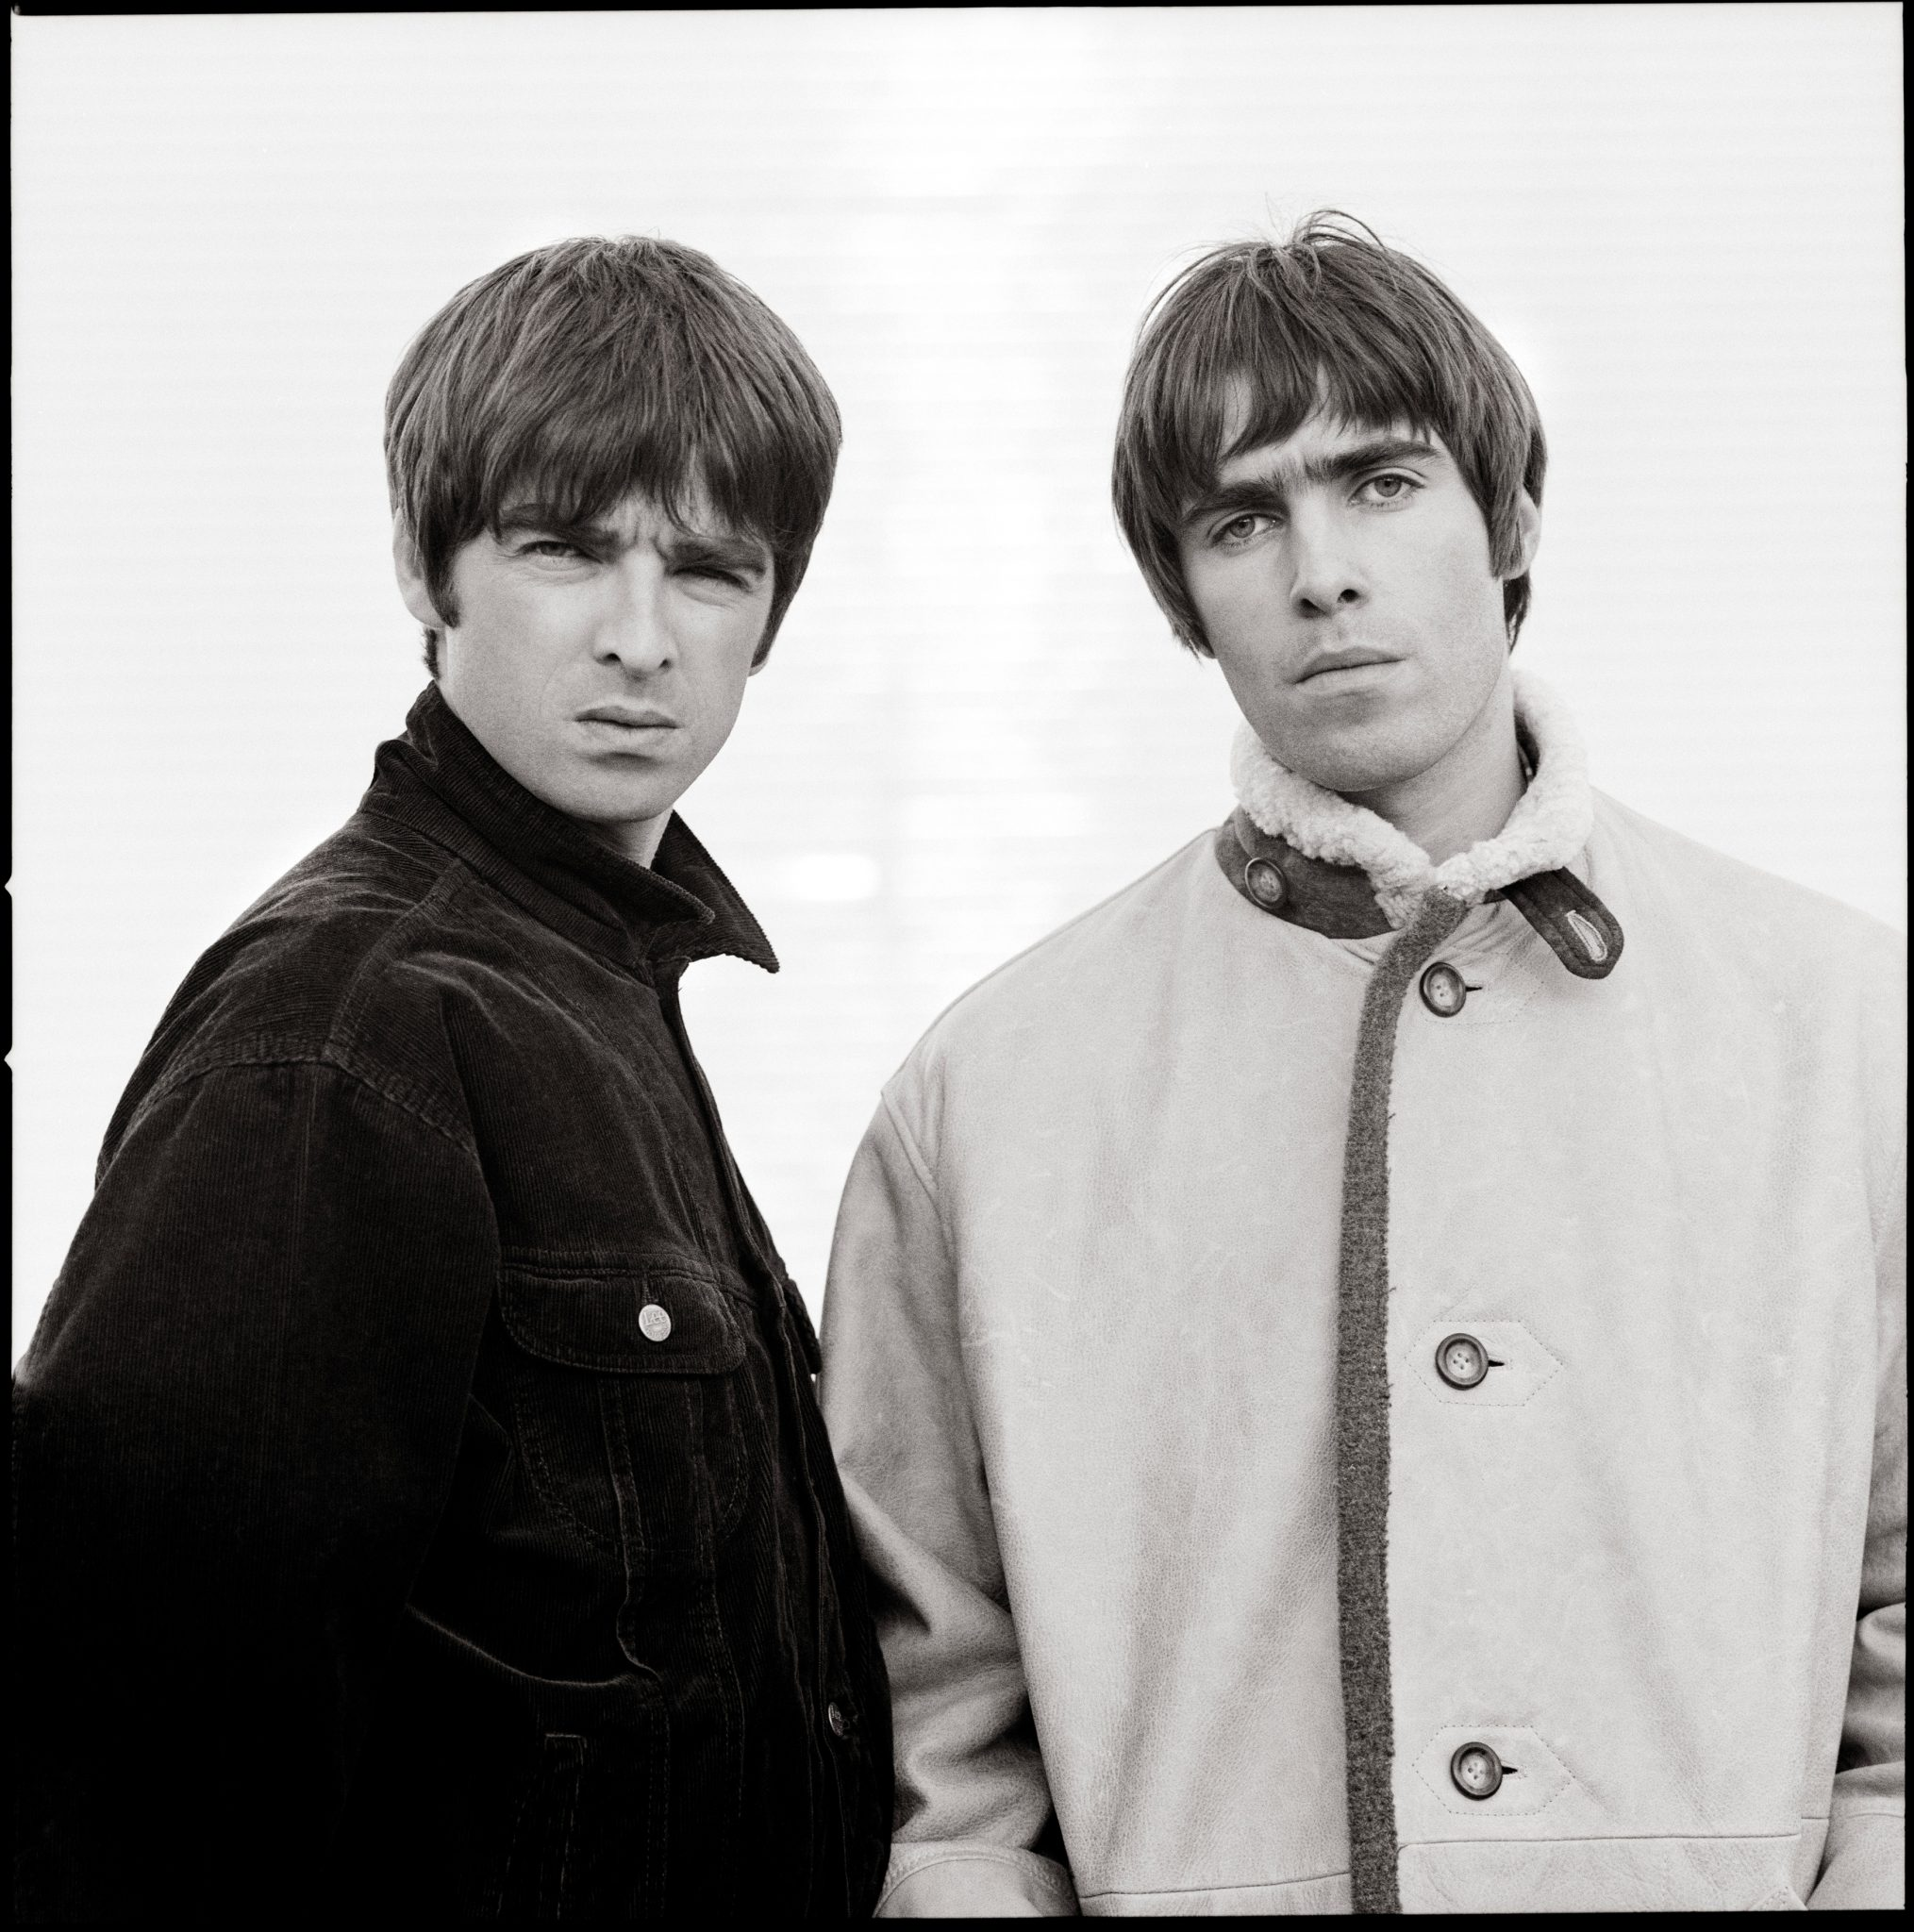 Oasis: Supersonic. Dal 7 al 9 novembre il documentario sulla band dei fratelli Gallagher